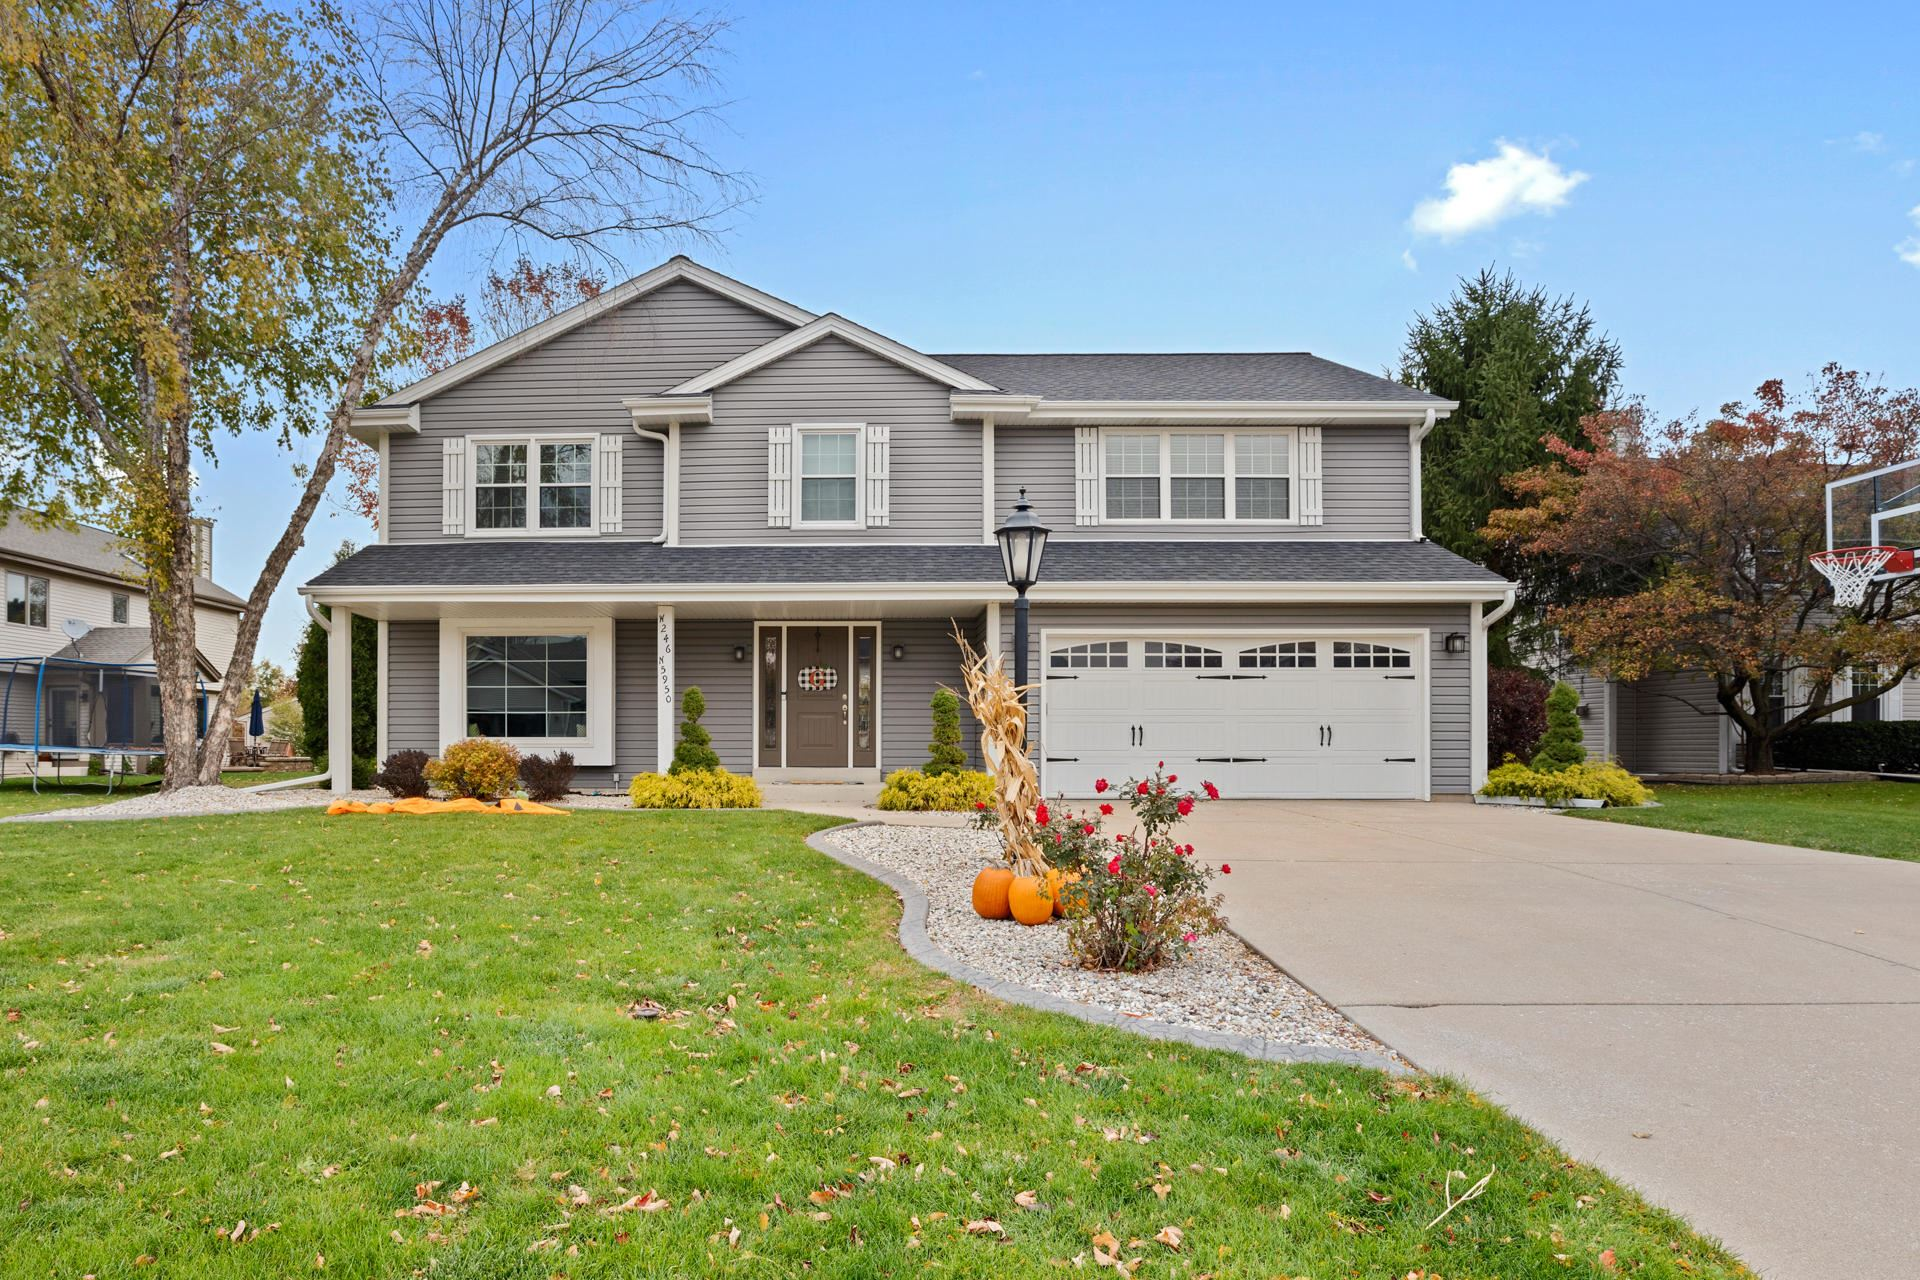 W246N5950 Grouse Ct, Sussex, WI 53089 - #: 1715608